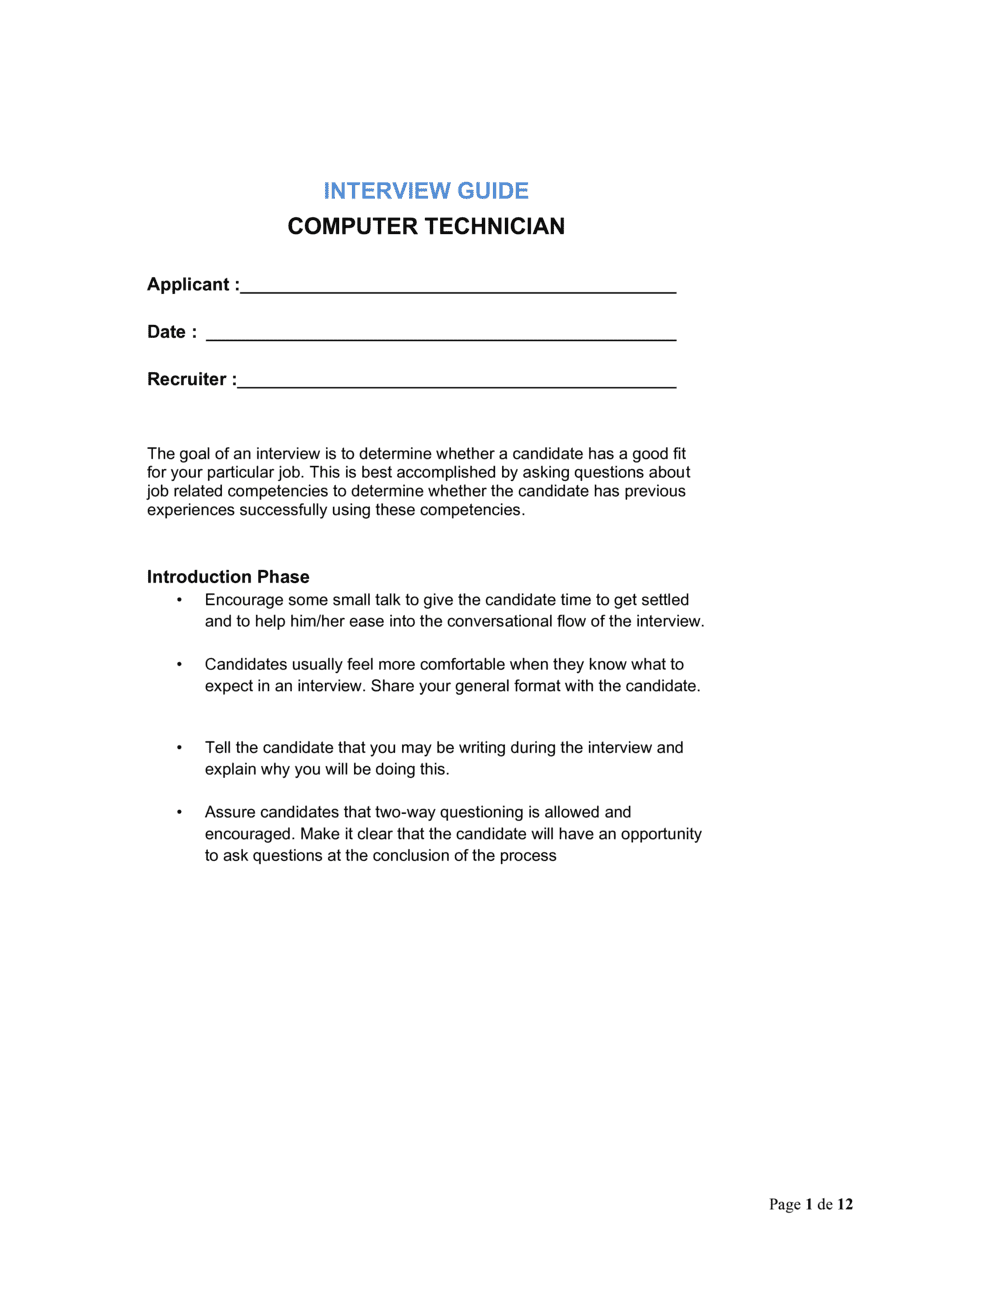 Business-in-a-Box's Interview Guide Computer Technician Template